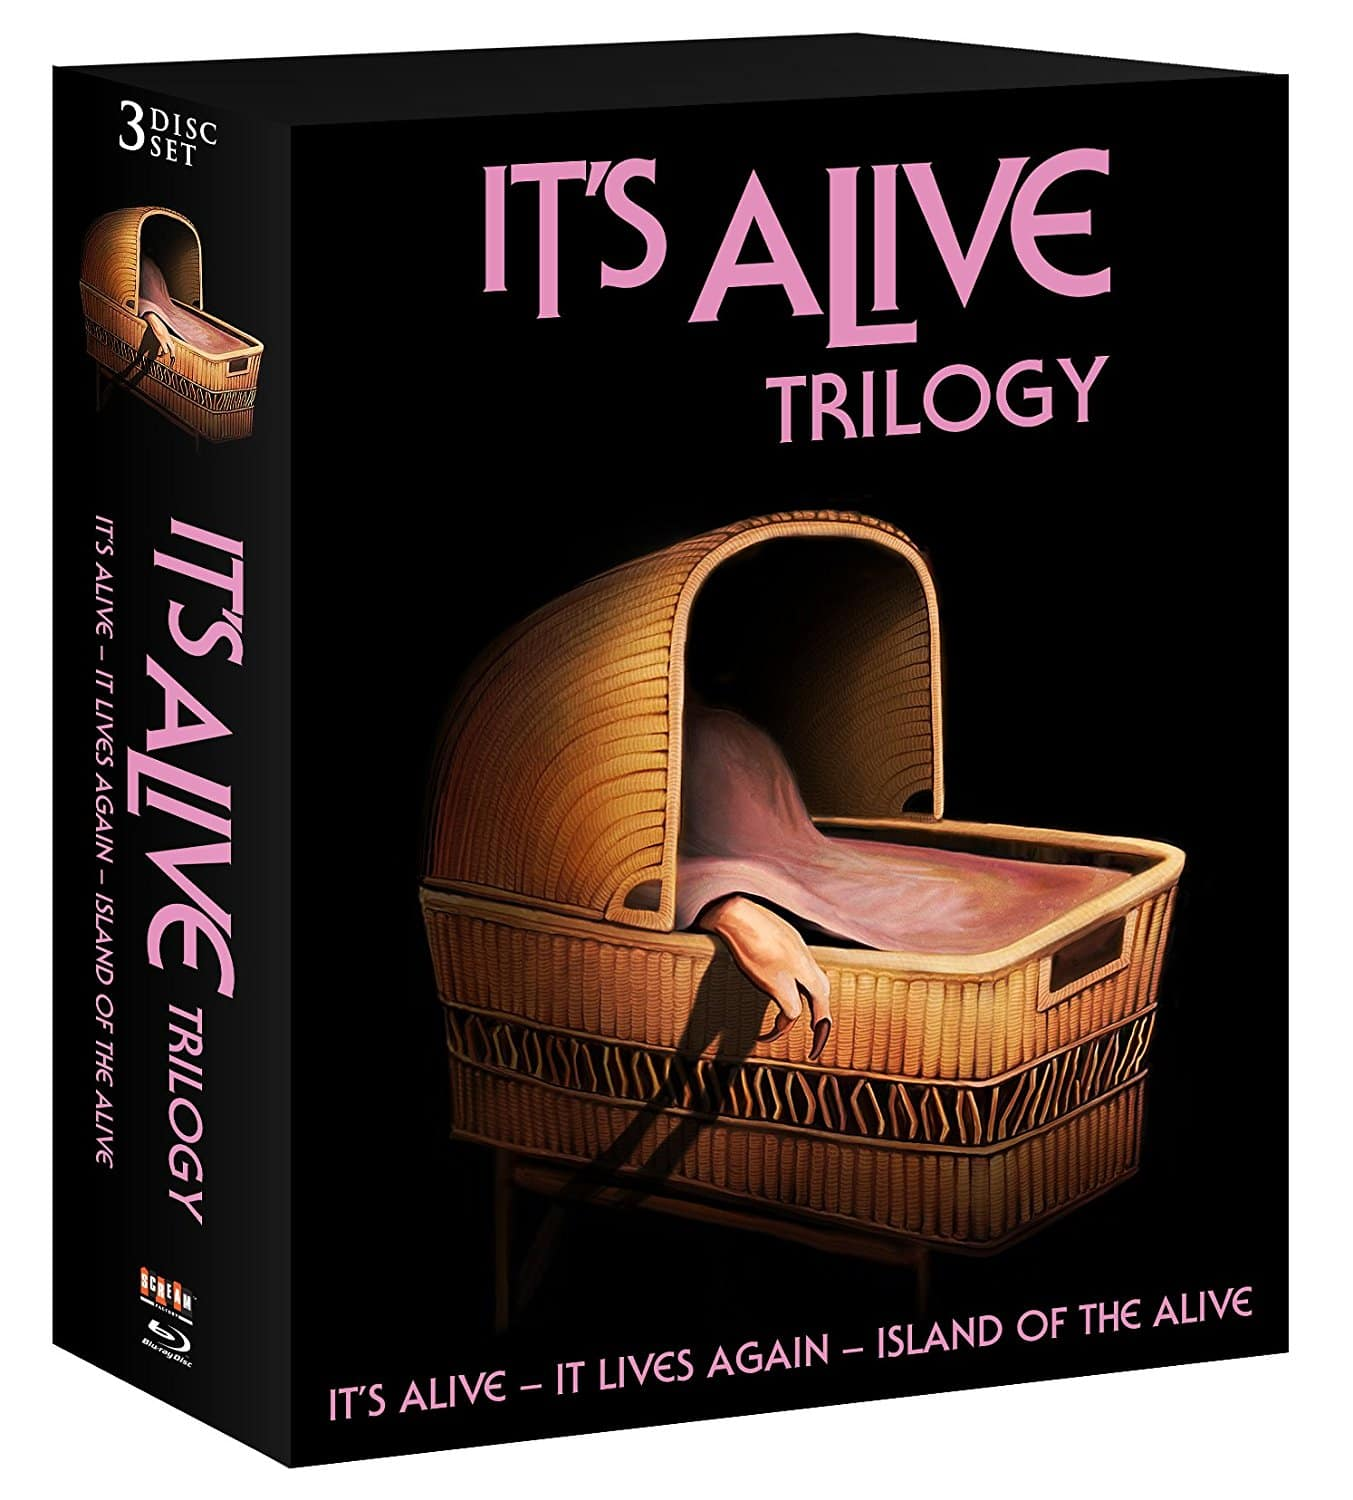 Target REDcard Holders: Shout! Factory: It's Alive Trilogy Pre-Order (Blu-ray) $23.90 + Free Shipping